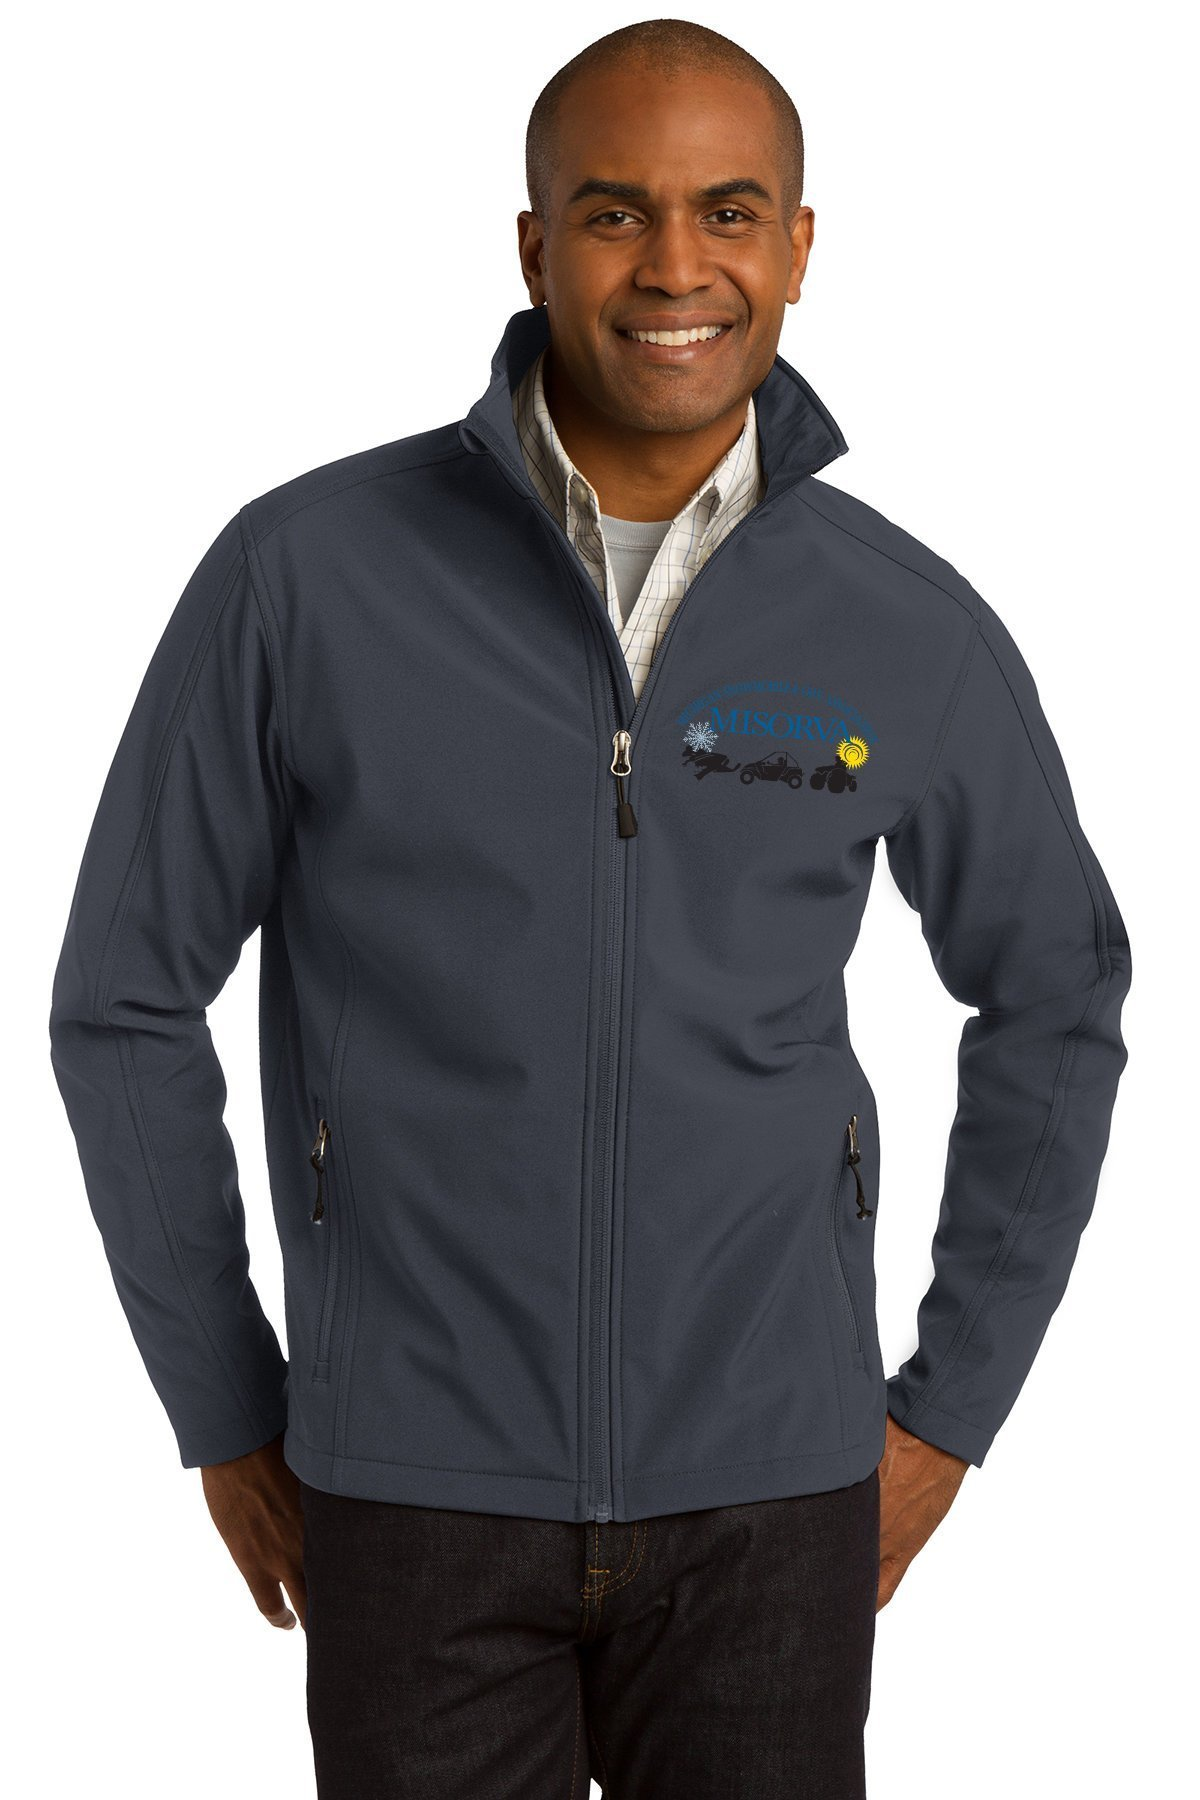 TLJ317-mens-tall-soft-shell-charcoal